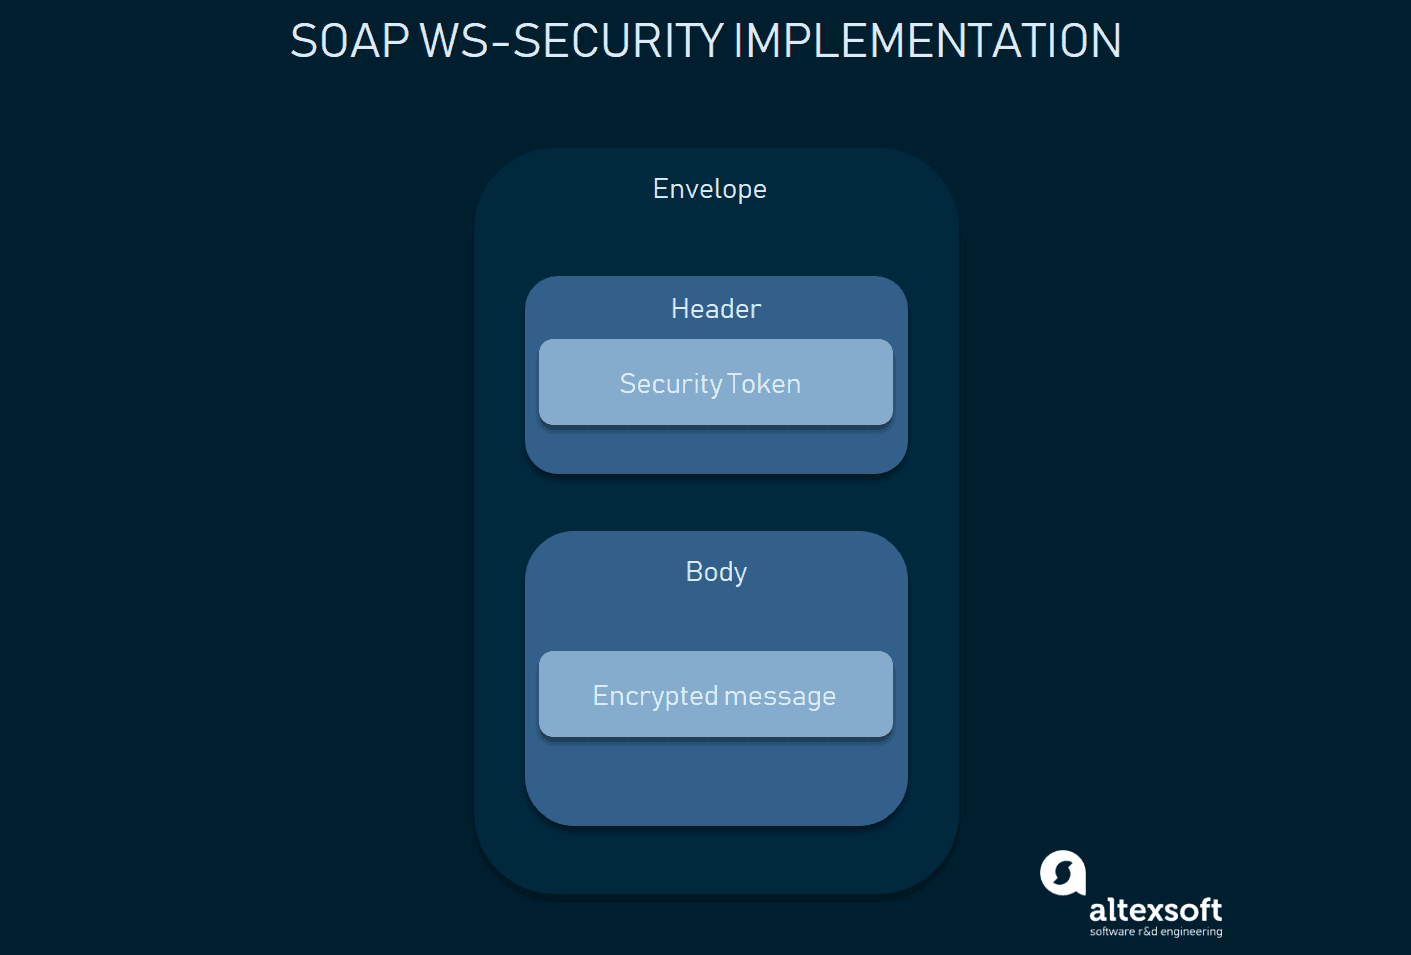 SOAP WS Security